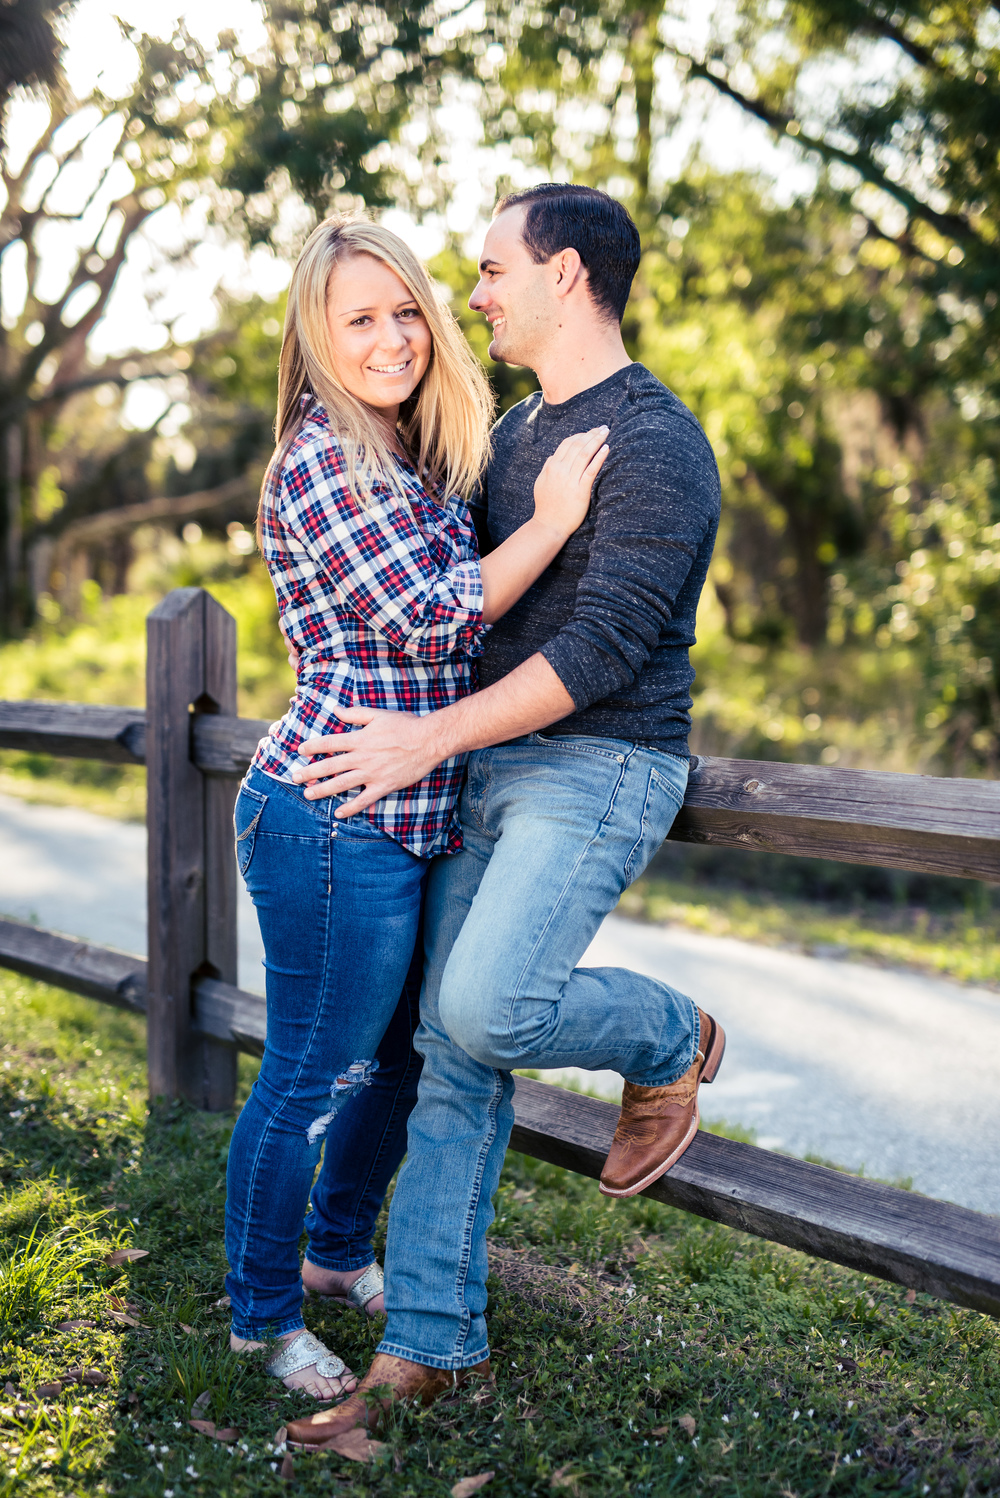 {Lexi&Joe'sEngagementSession}{RiverBendPark}{March2016}-0003.jpg